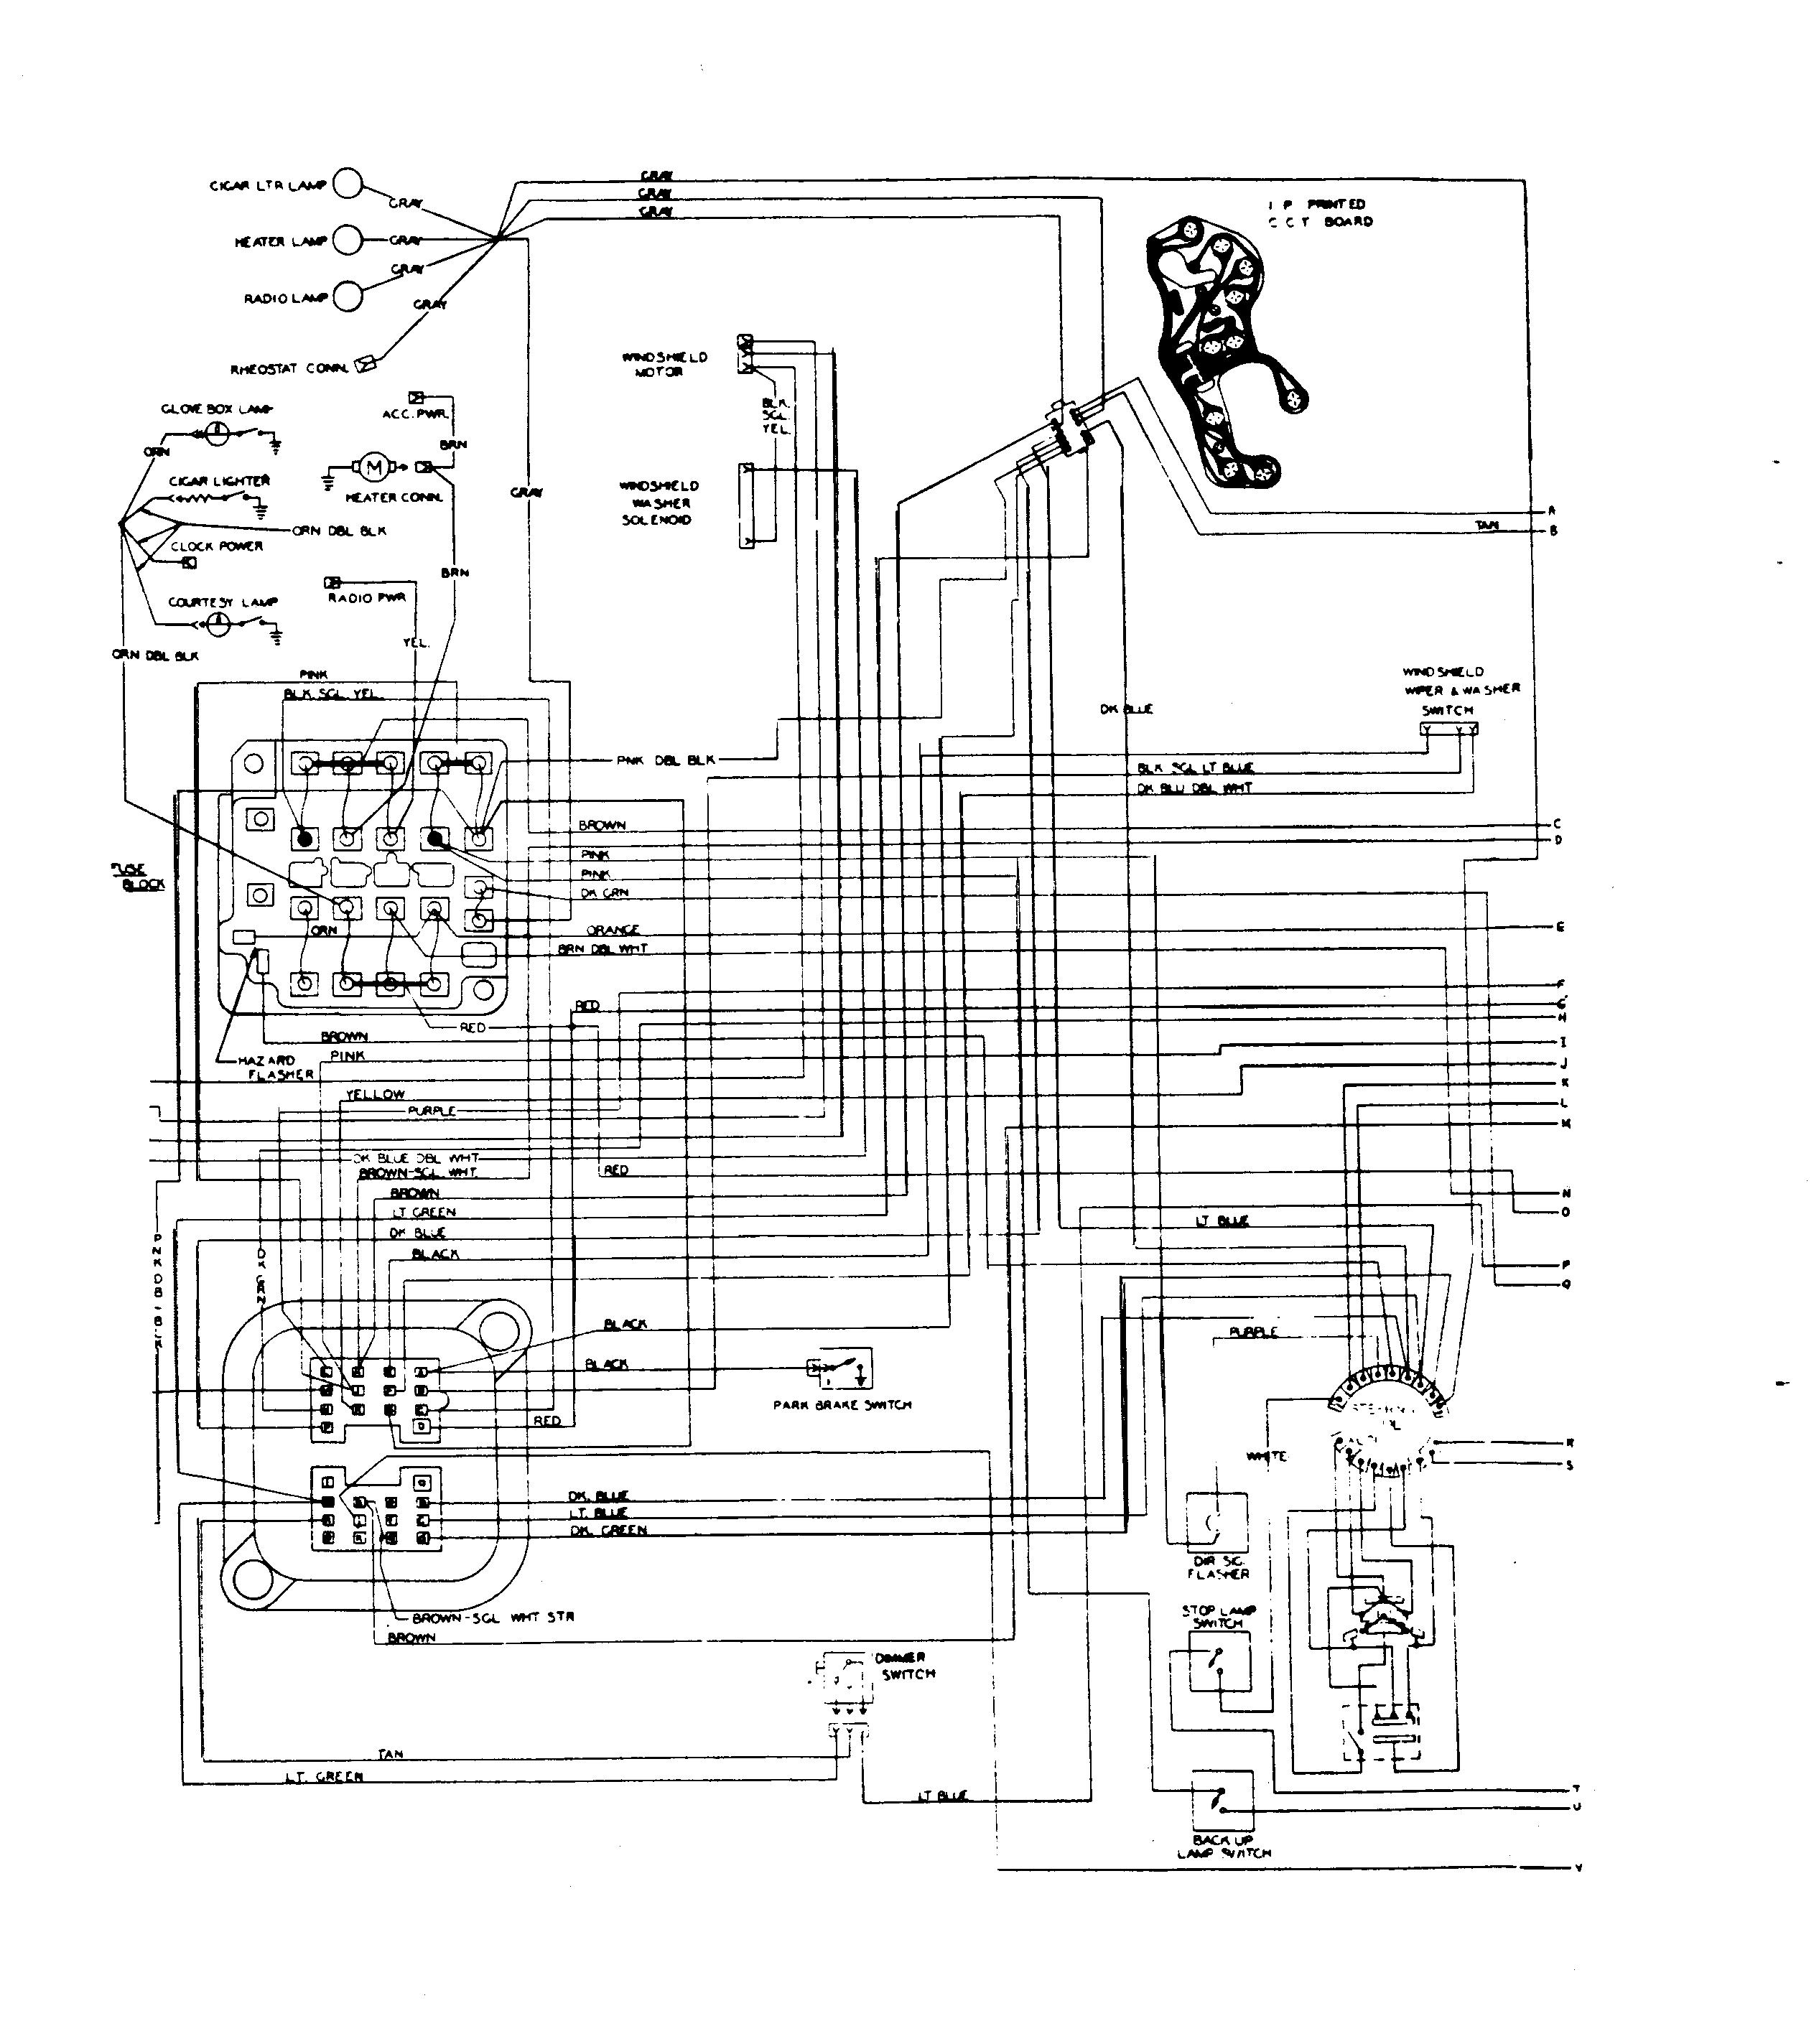 gto wiring diagram scans - page 2 - pontiac gto forum, Wiring diagram